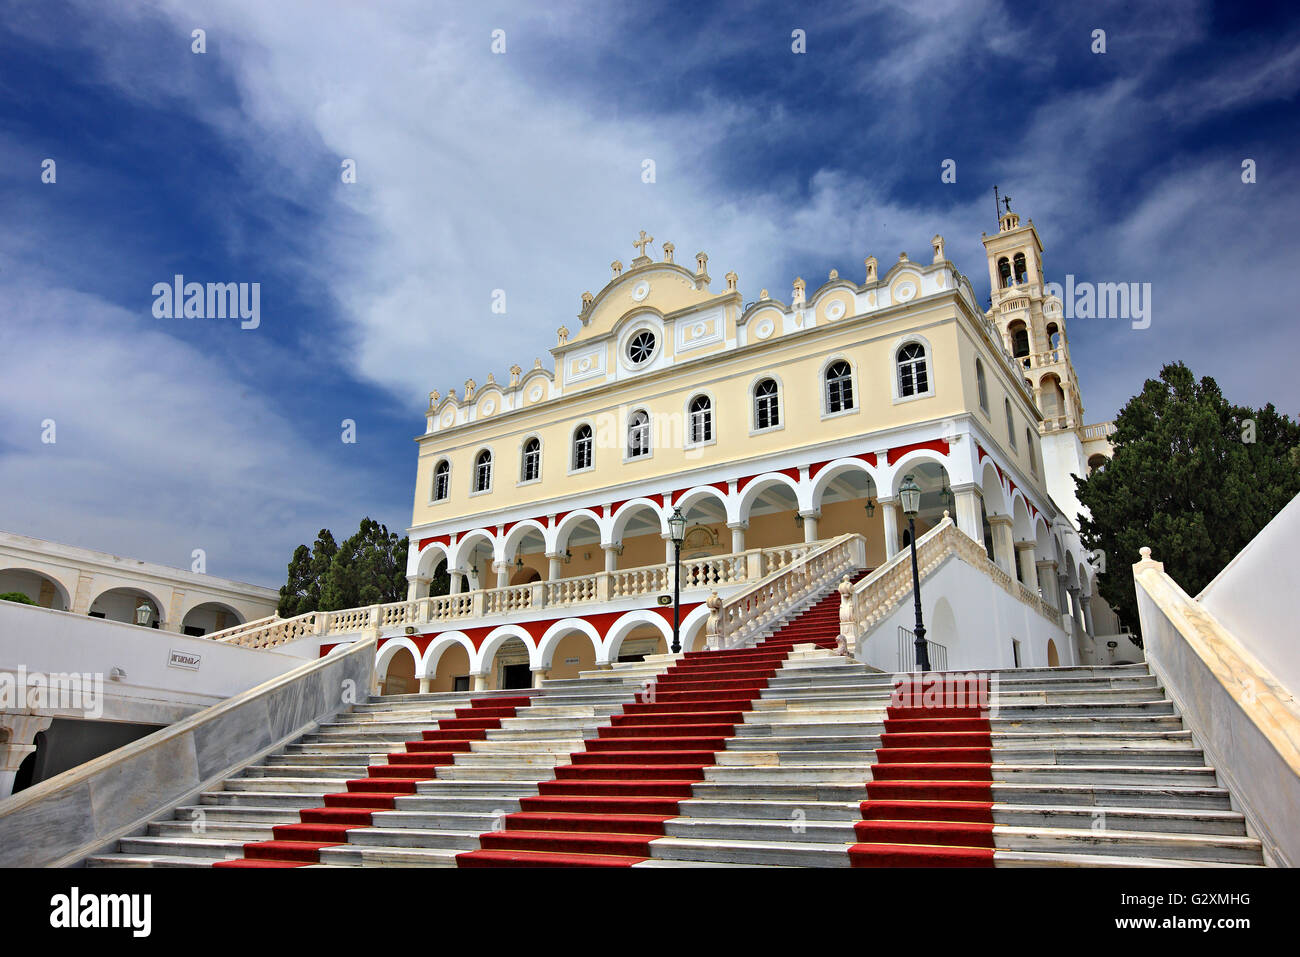 The church of Virgin Mary (Panagia) in Tinos island,. Cyclades, Aegean Sea, Greece Stock Photo